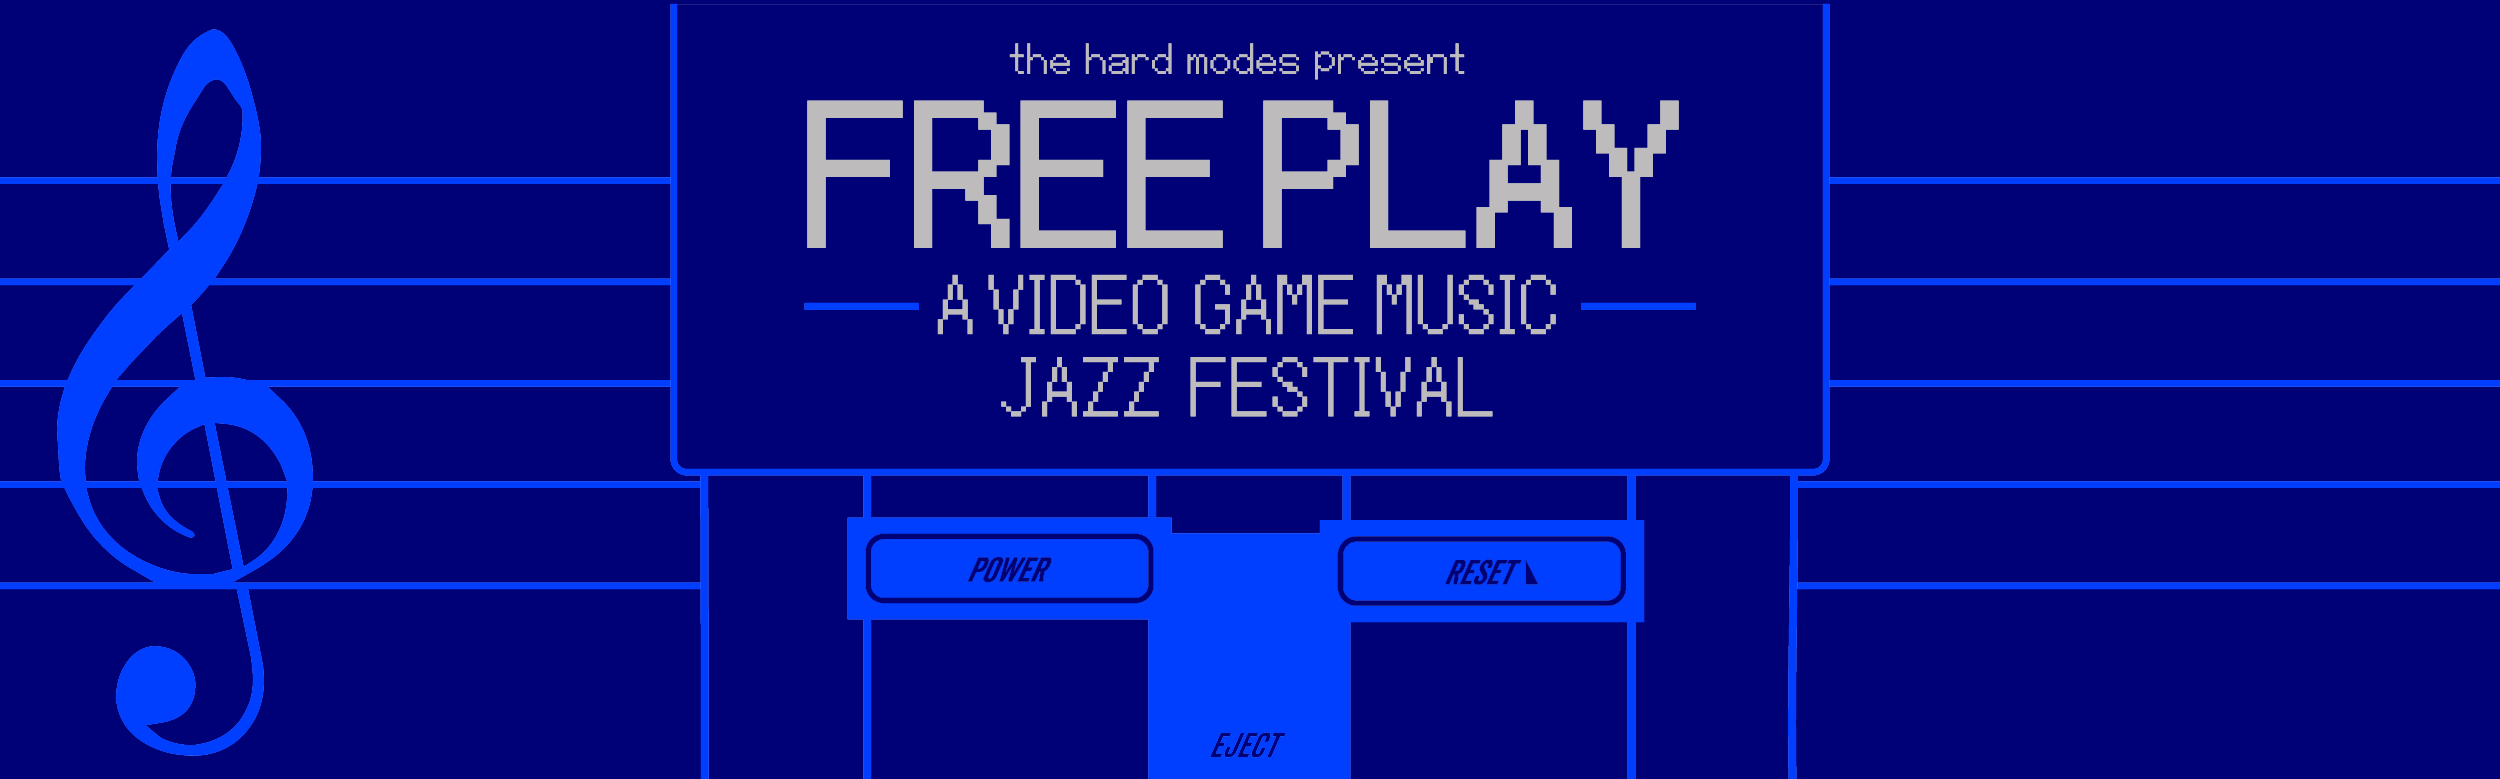 FREE PLAY - Web Banner.png